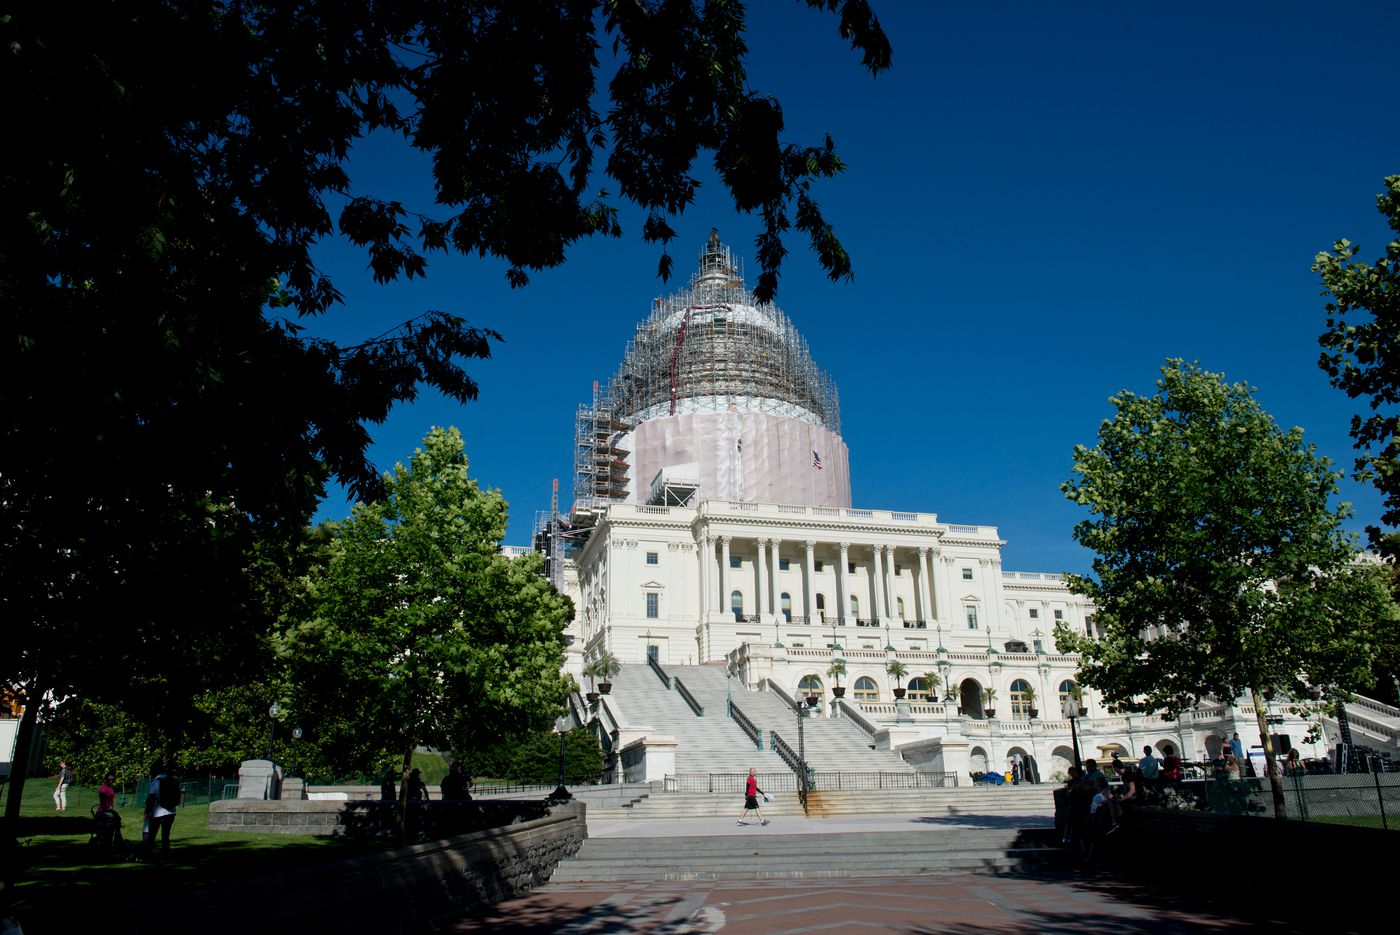 The United States Capitol, which opened in 1800, is undergoing restoration on its dome. Photographed on Wednesday, June 24, 2015. (Marc Lester/Alaska Dispatch News)